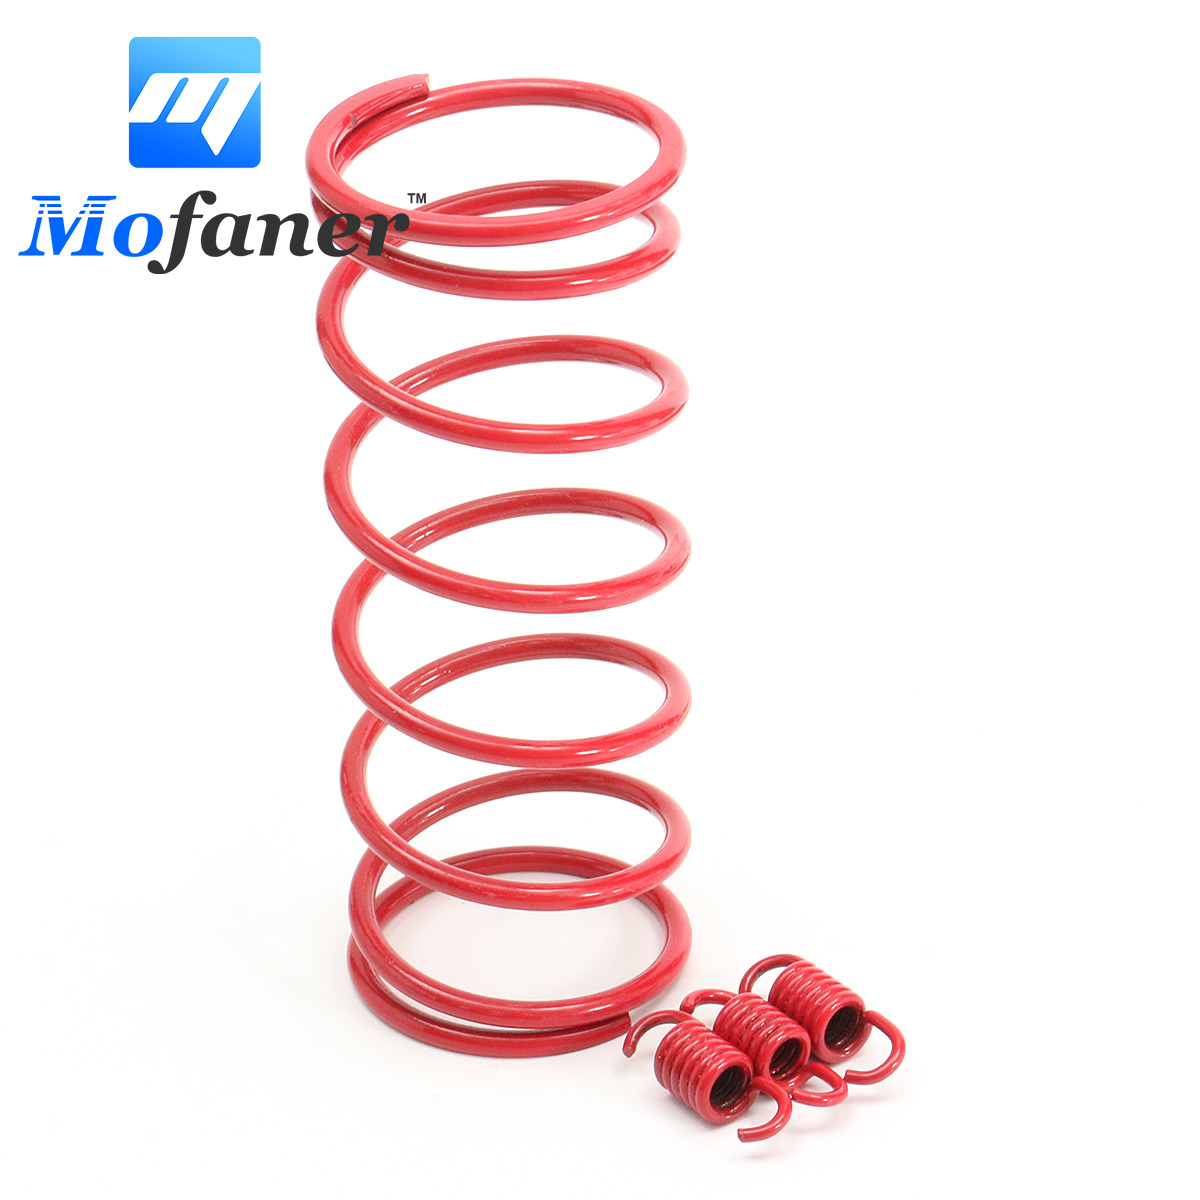 Red 2000 RPM Performance Tourque Clutch Springs for GY6 152QMI /157QMJ engine GY6 125cc/150cc Chinese scooters ATV nibbi engine upgrade parts cylinder 58 5mm 6 2mm camshaft for gy6 scooter 150cc 125cc 152qmi 157qmj